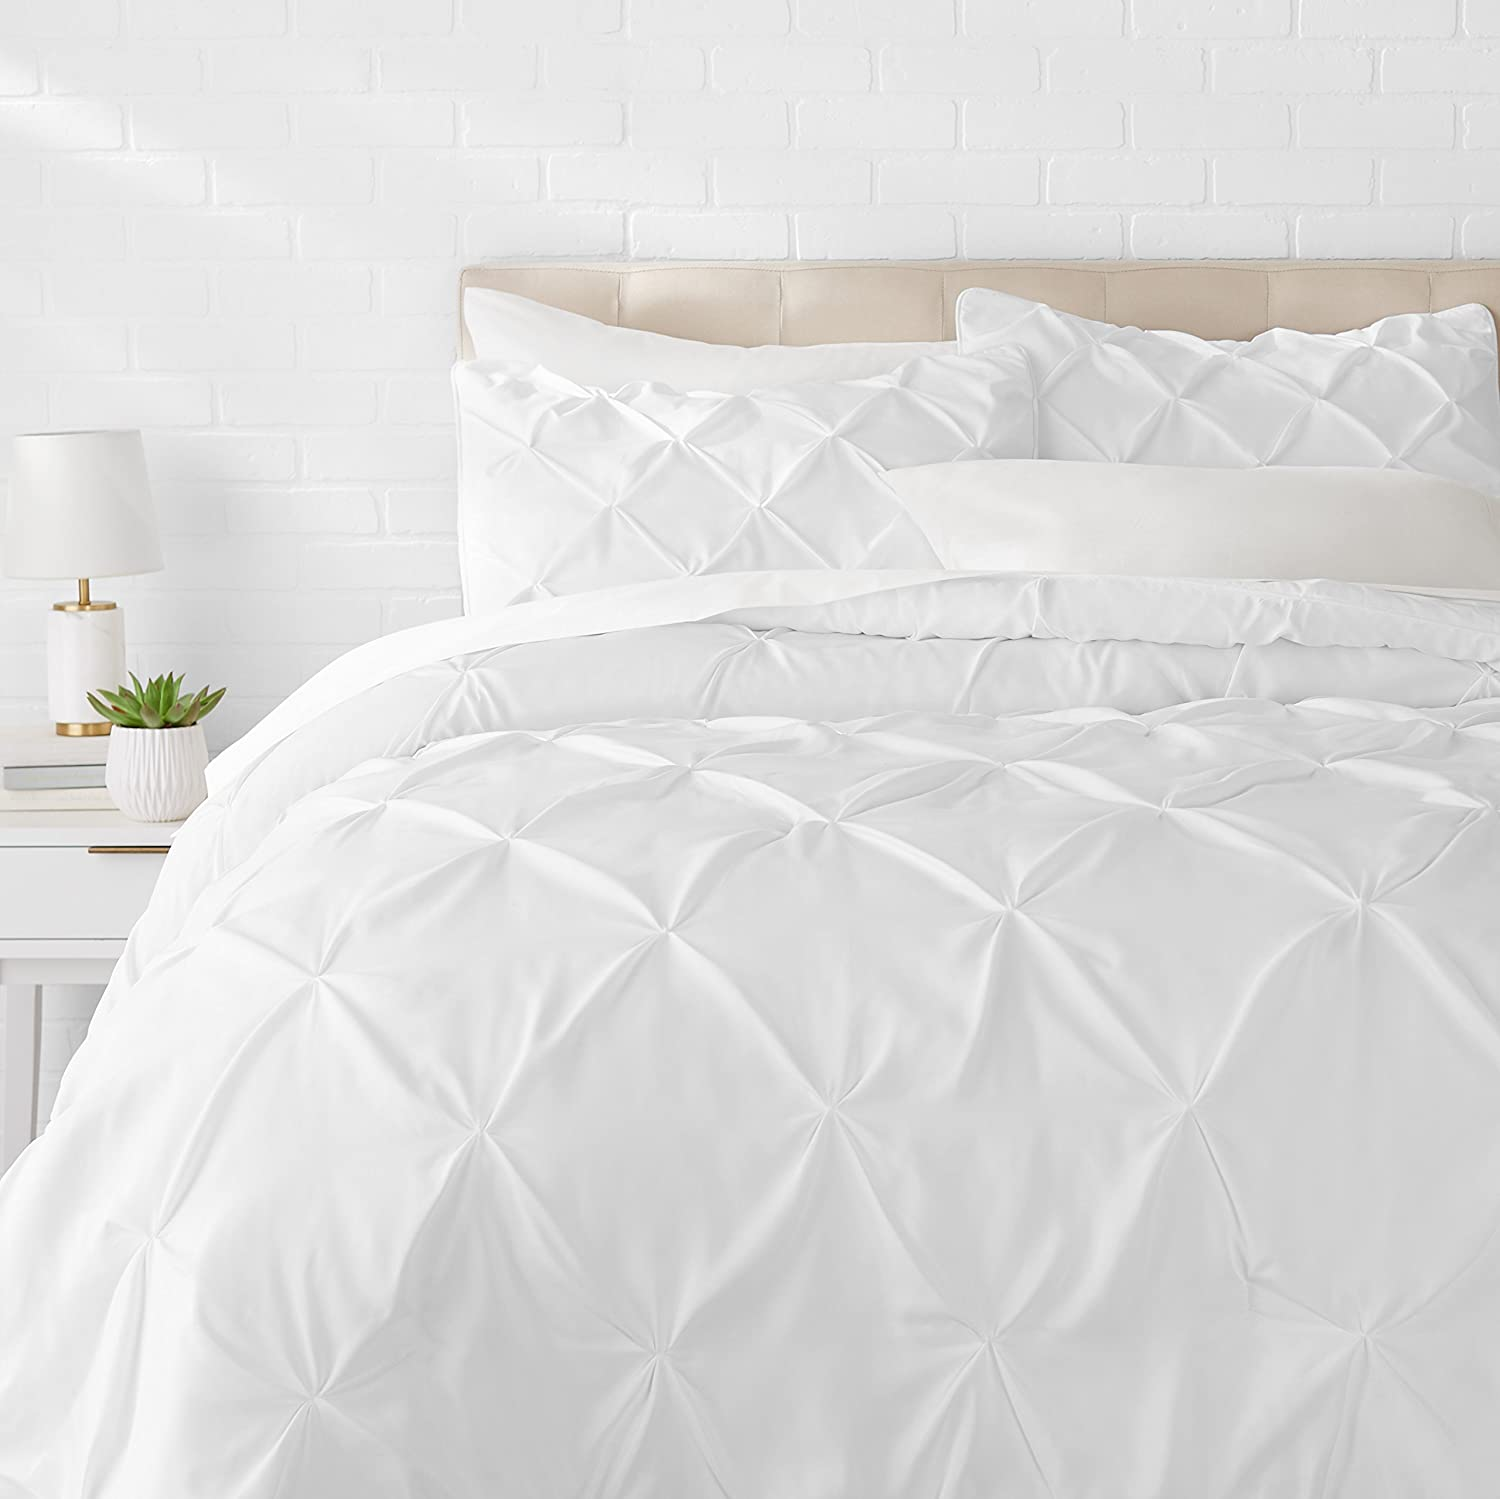 AmazonBasics Pinch Pleat Down-Alternative Comforter Bedding Set - Full / Queen, Bright White